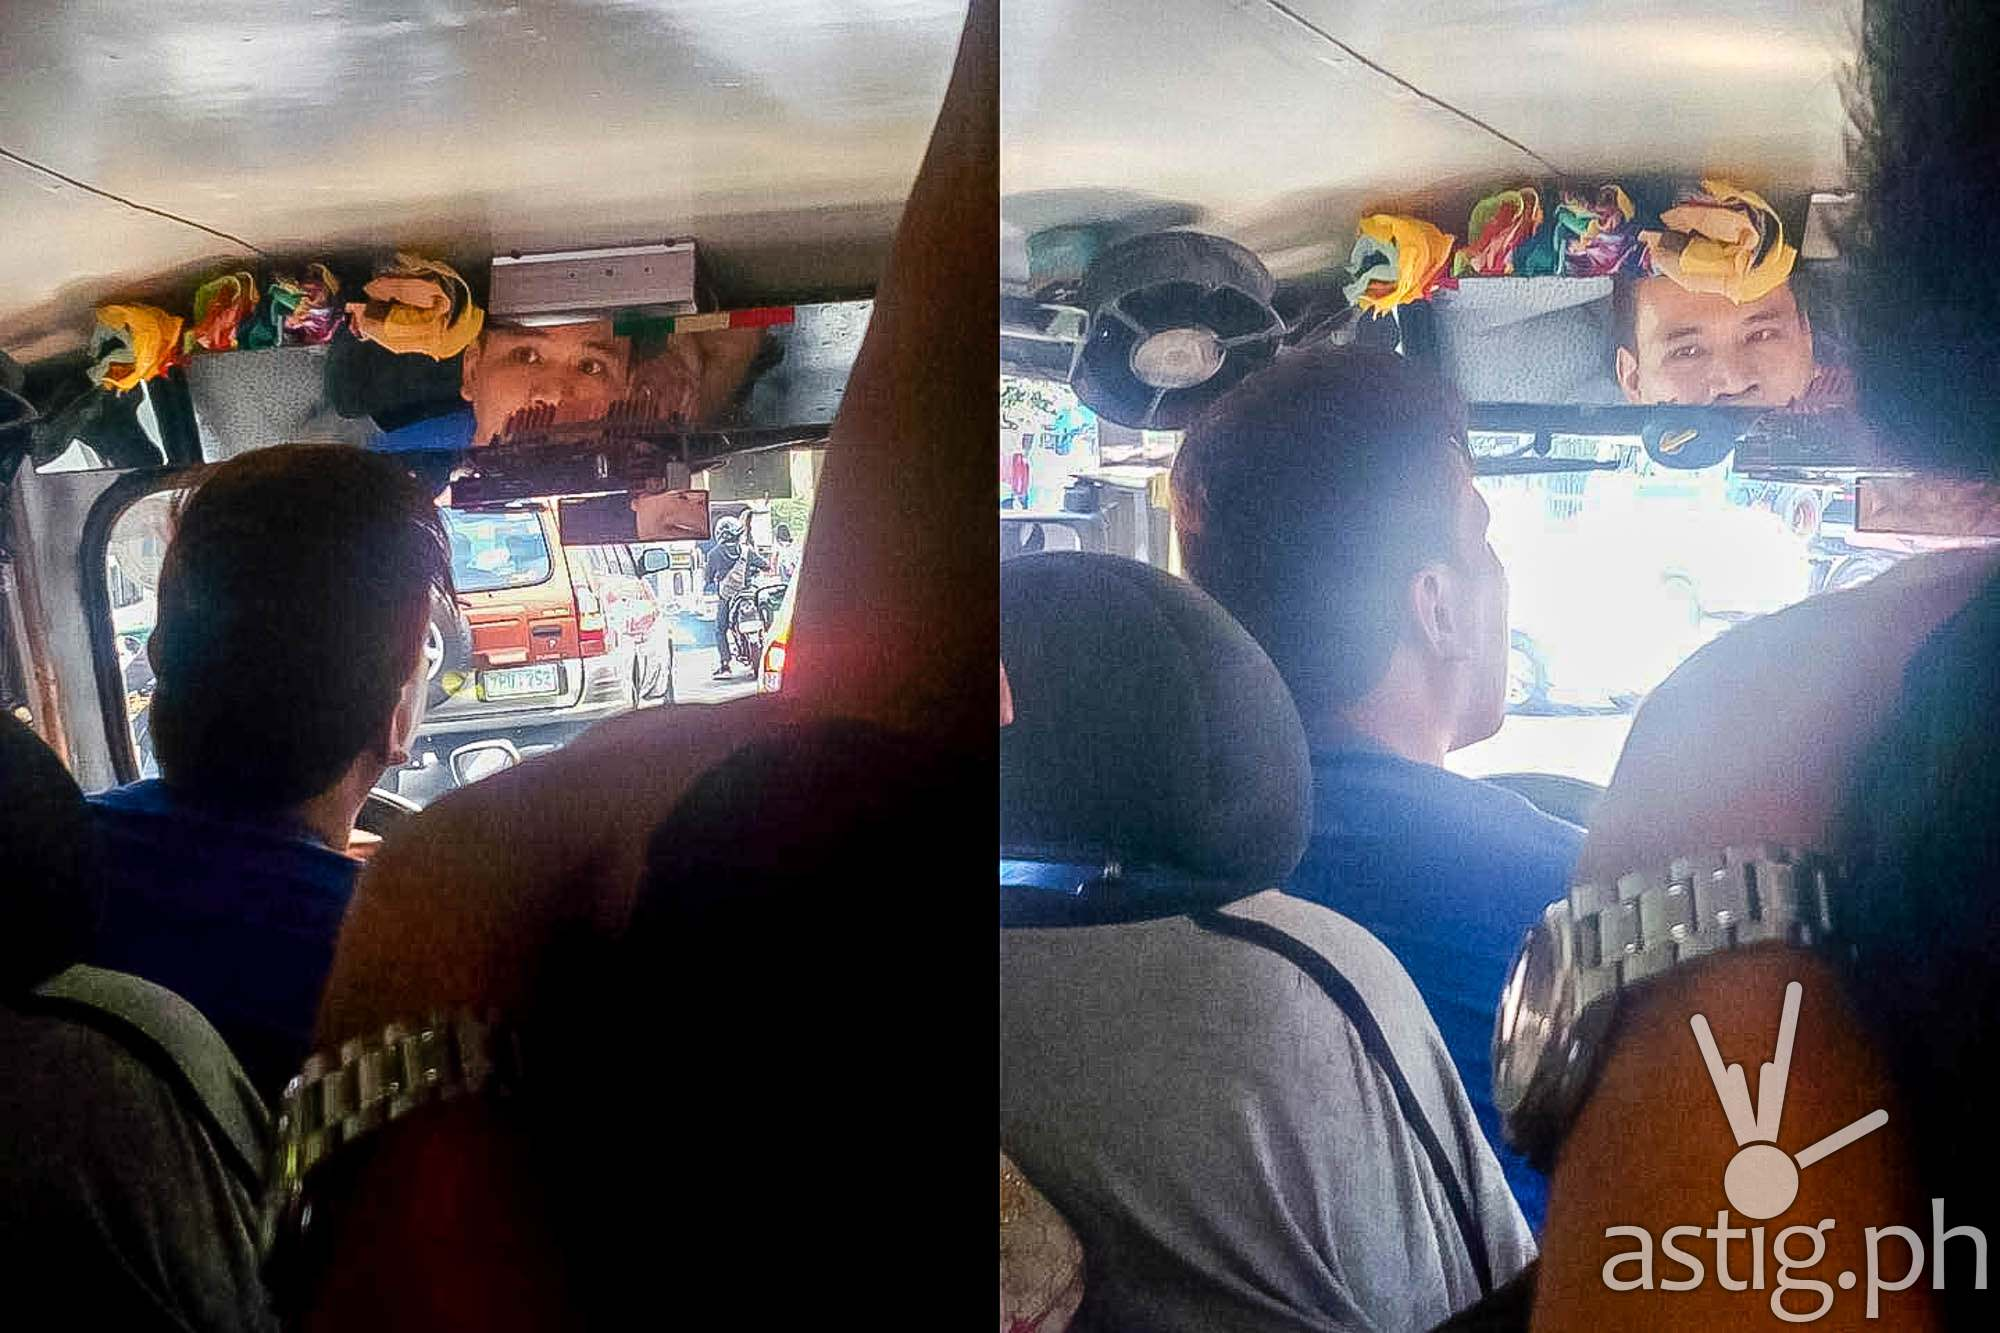 jeepney driver tries to kill his passengers